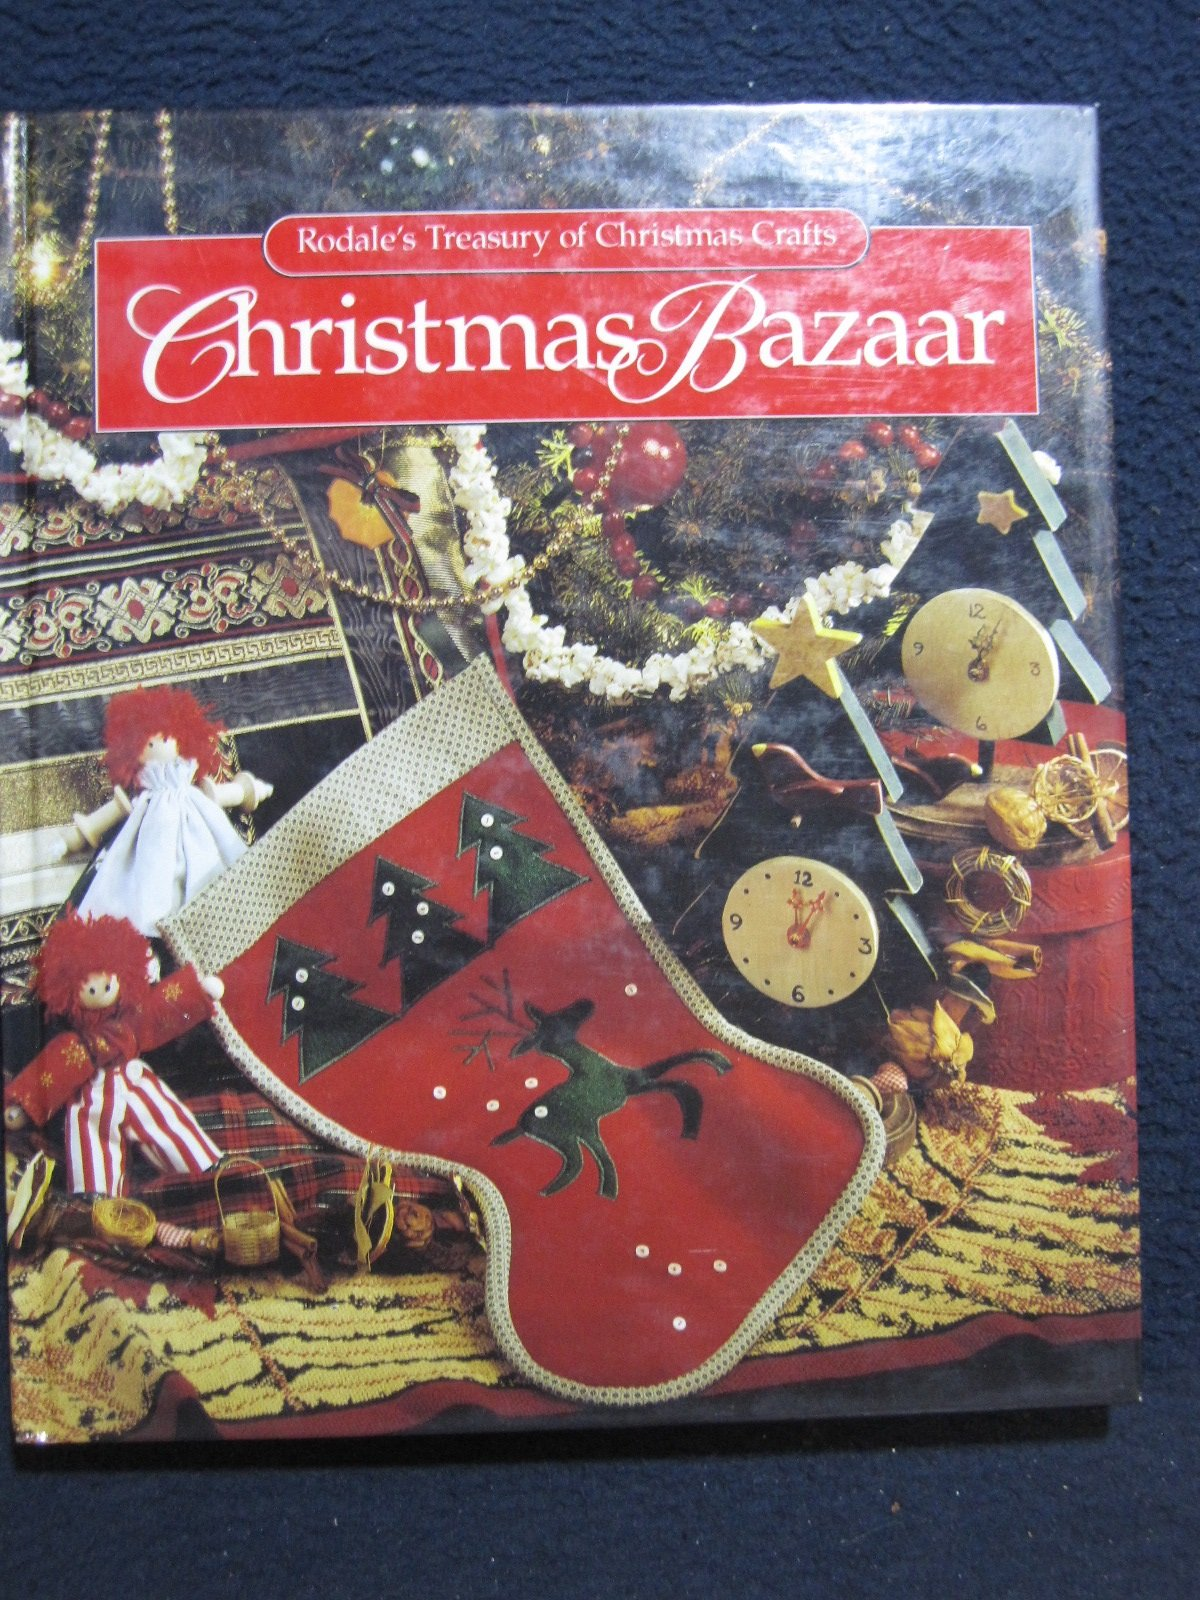 Christmas Bazaar Rodales S Treasury Of Christmas Crafts Balitas Margaret Lydic Bolesta Karen Reames Nancy 9780875965987 Amazon Com Books